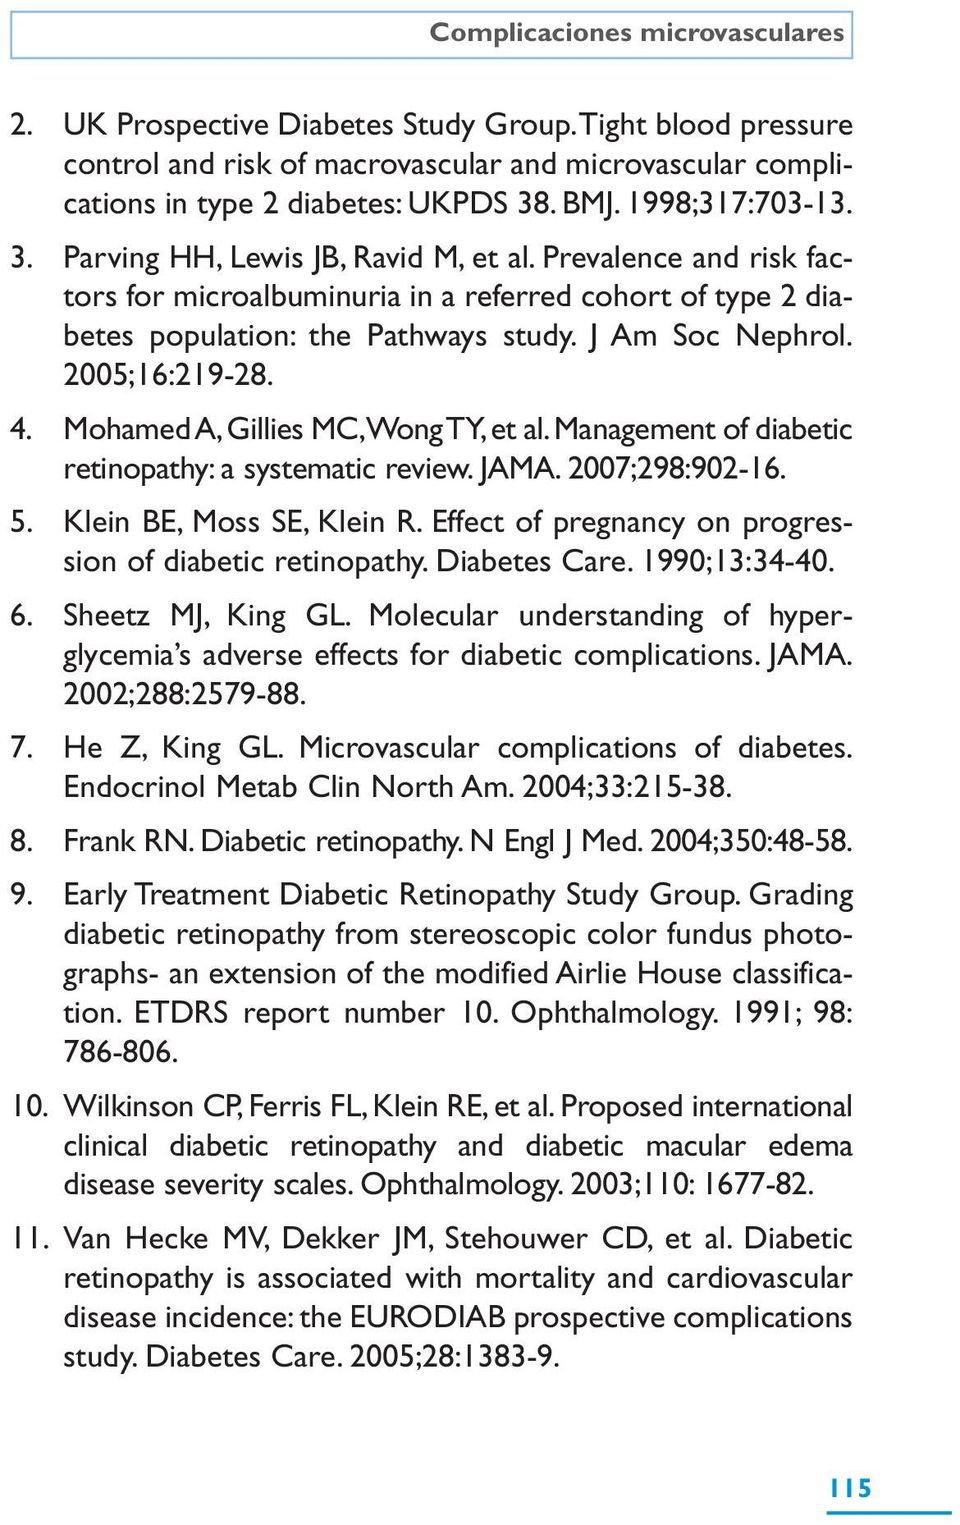 2005;16:219-28. 4. Mohamed A, Gillies MC,Wong TY, et al. Management of diabetic retinopathy: a systematic review. JAMA. 2007;298:902-16. 5. Klein BE, Moss SE, Klein R.